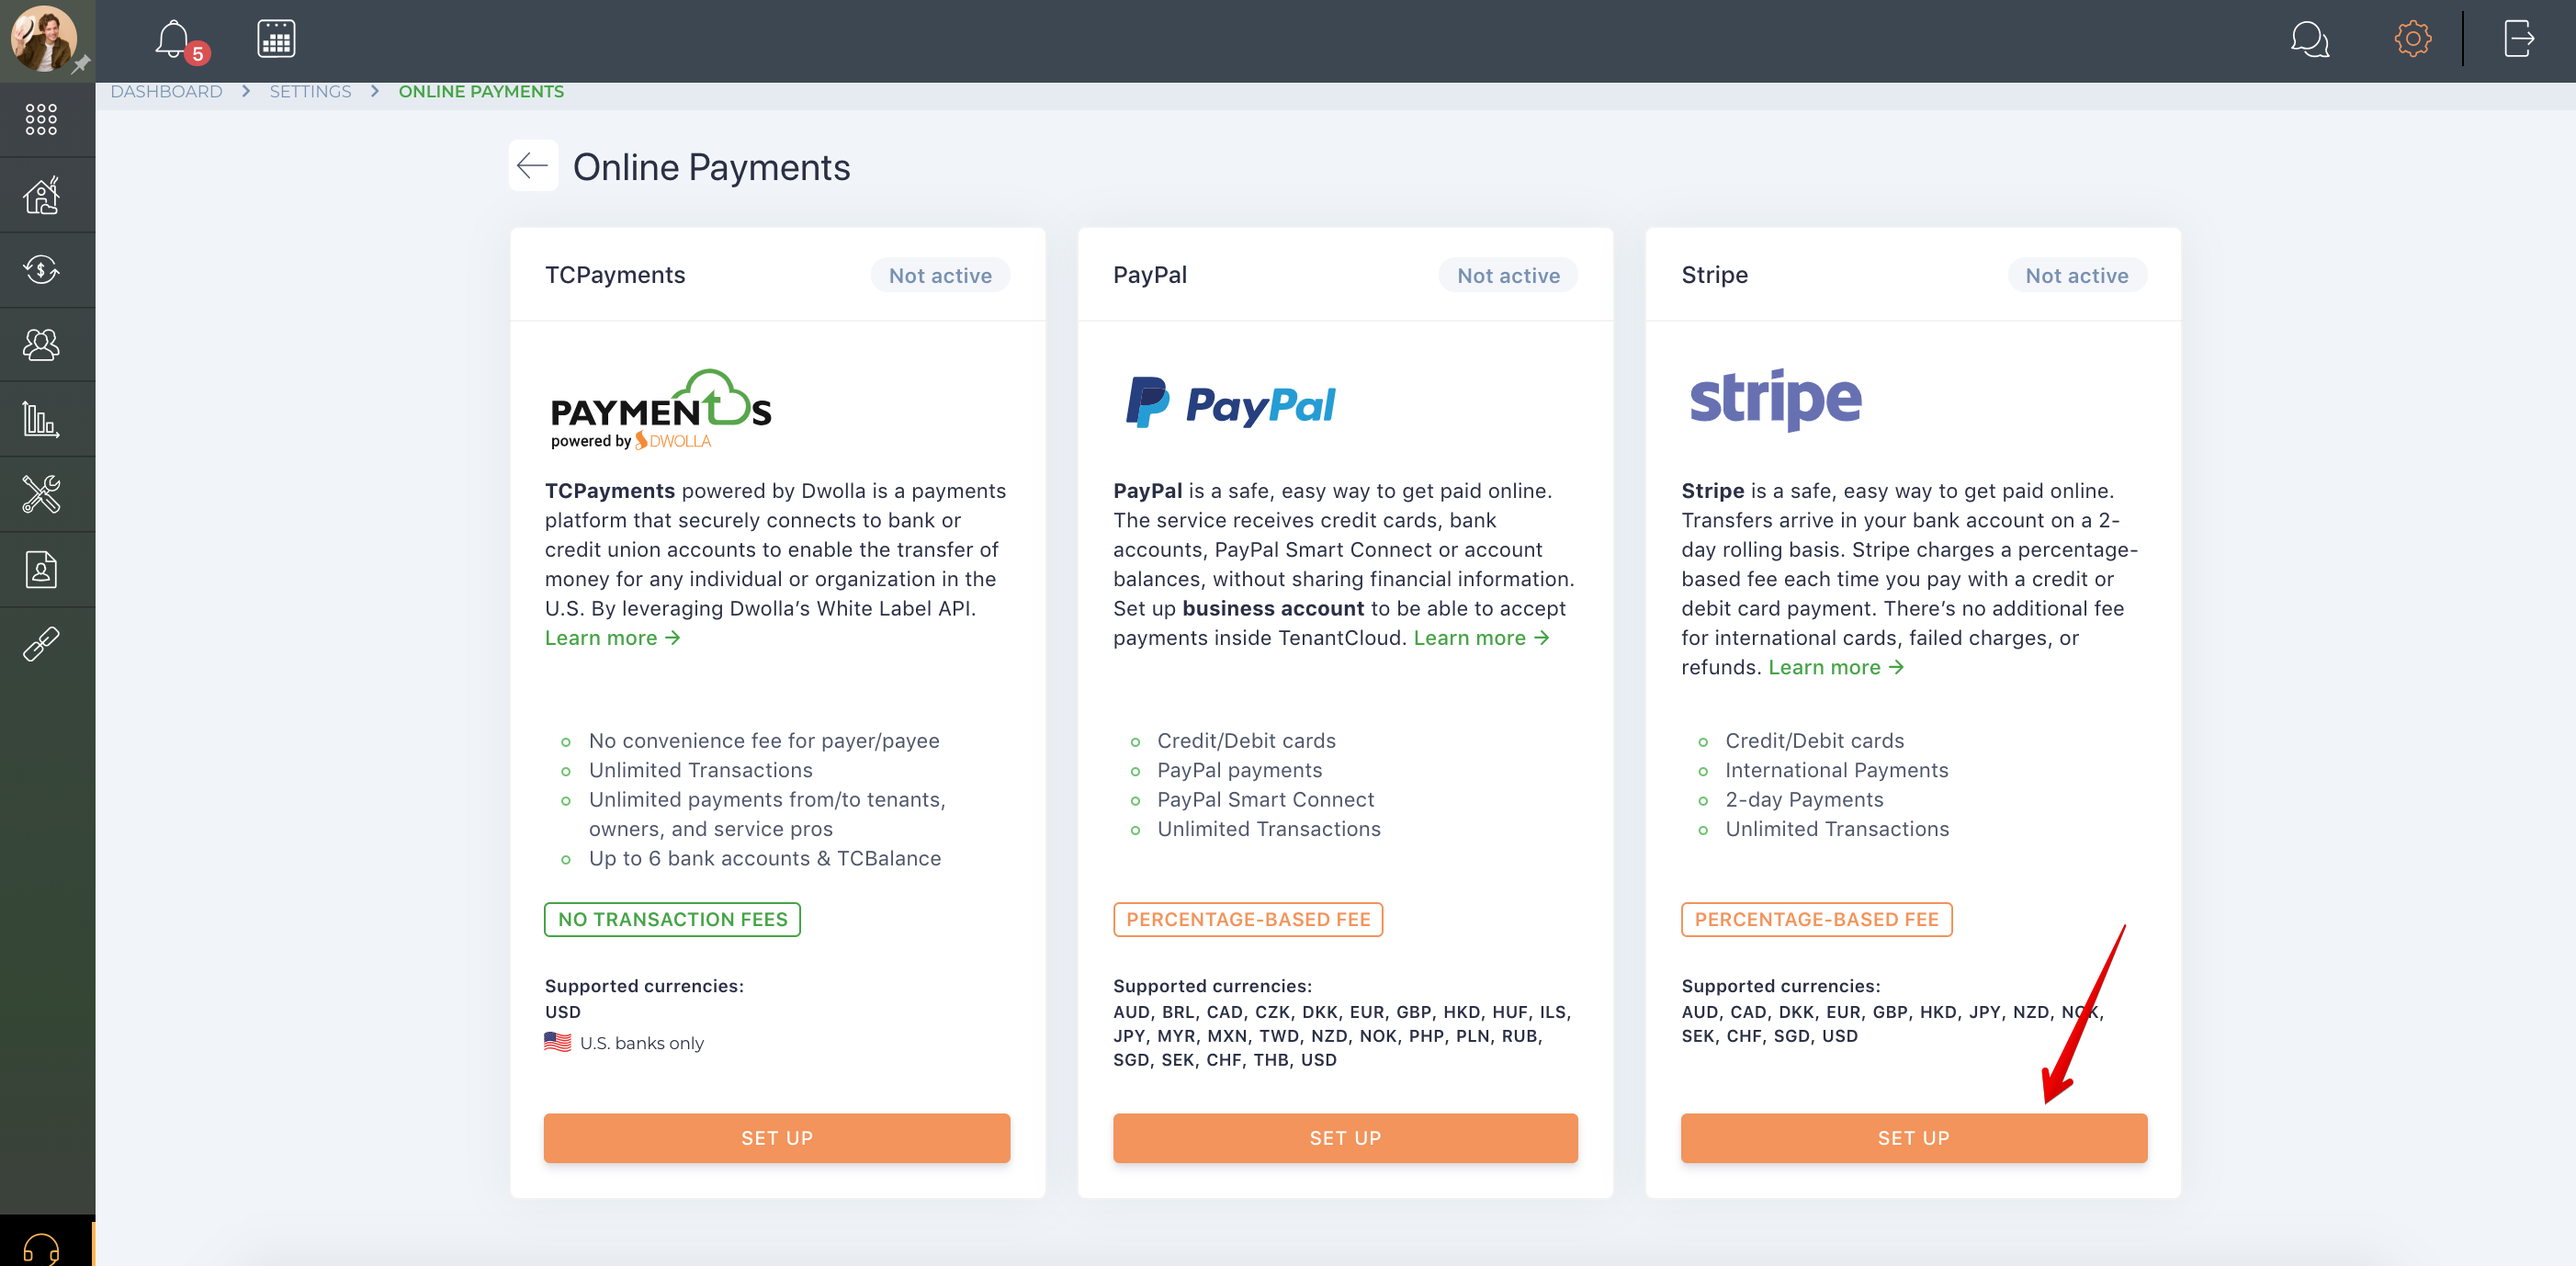 How do I set up my Stripe account?